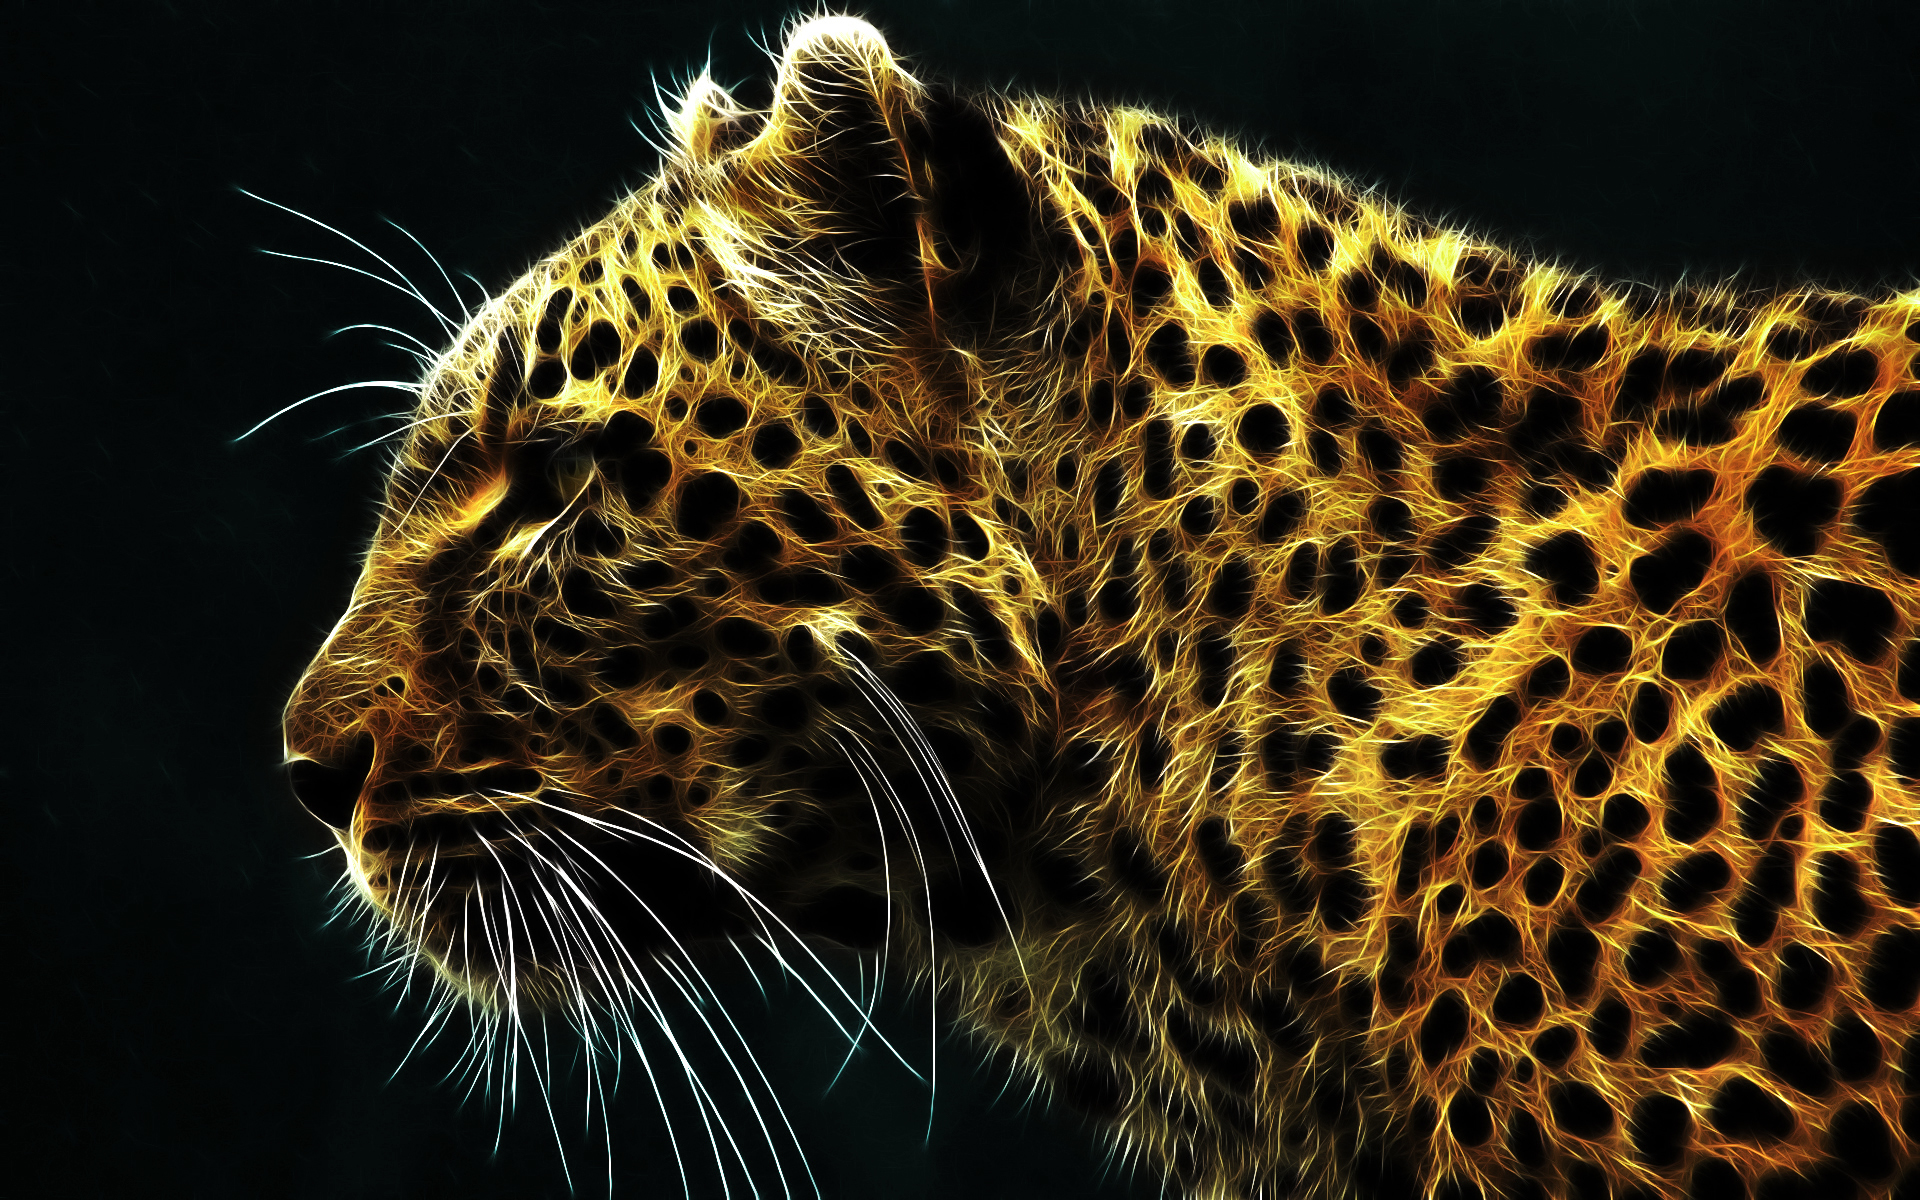 43374 download wallpaper Animals, Tigers screensavers and pictures for free